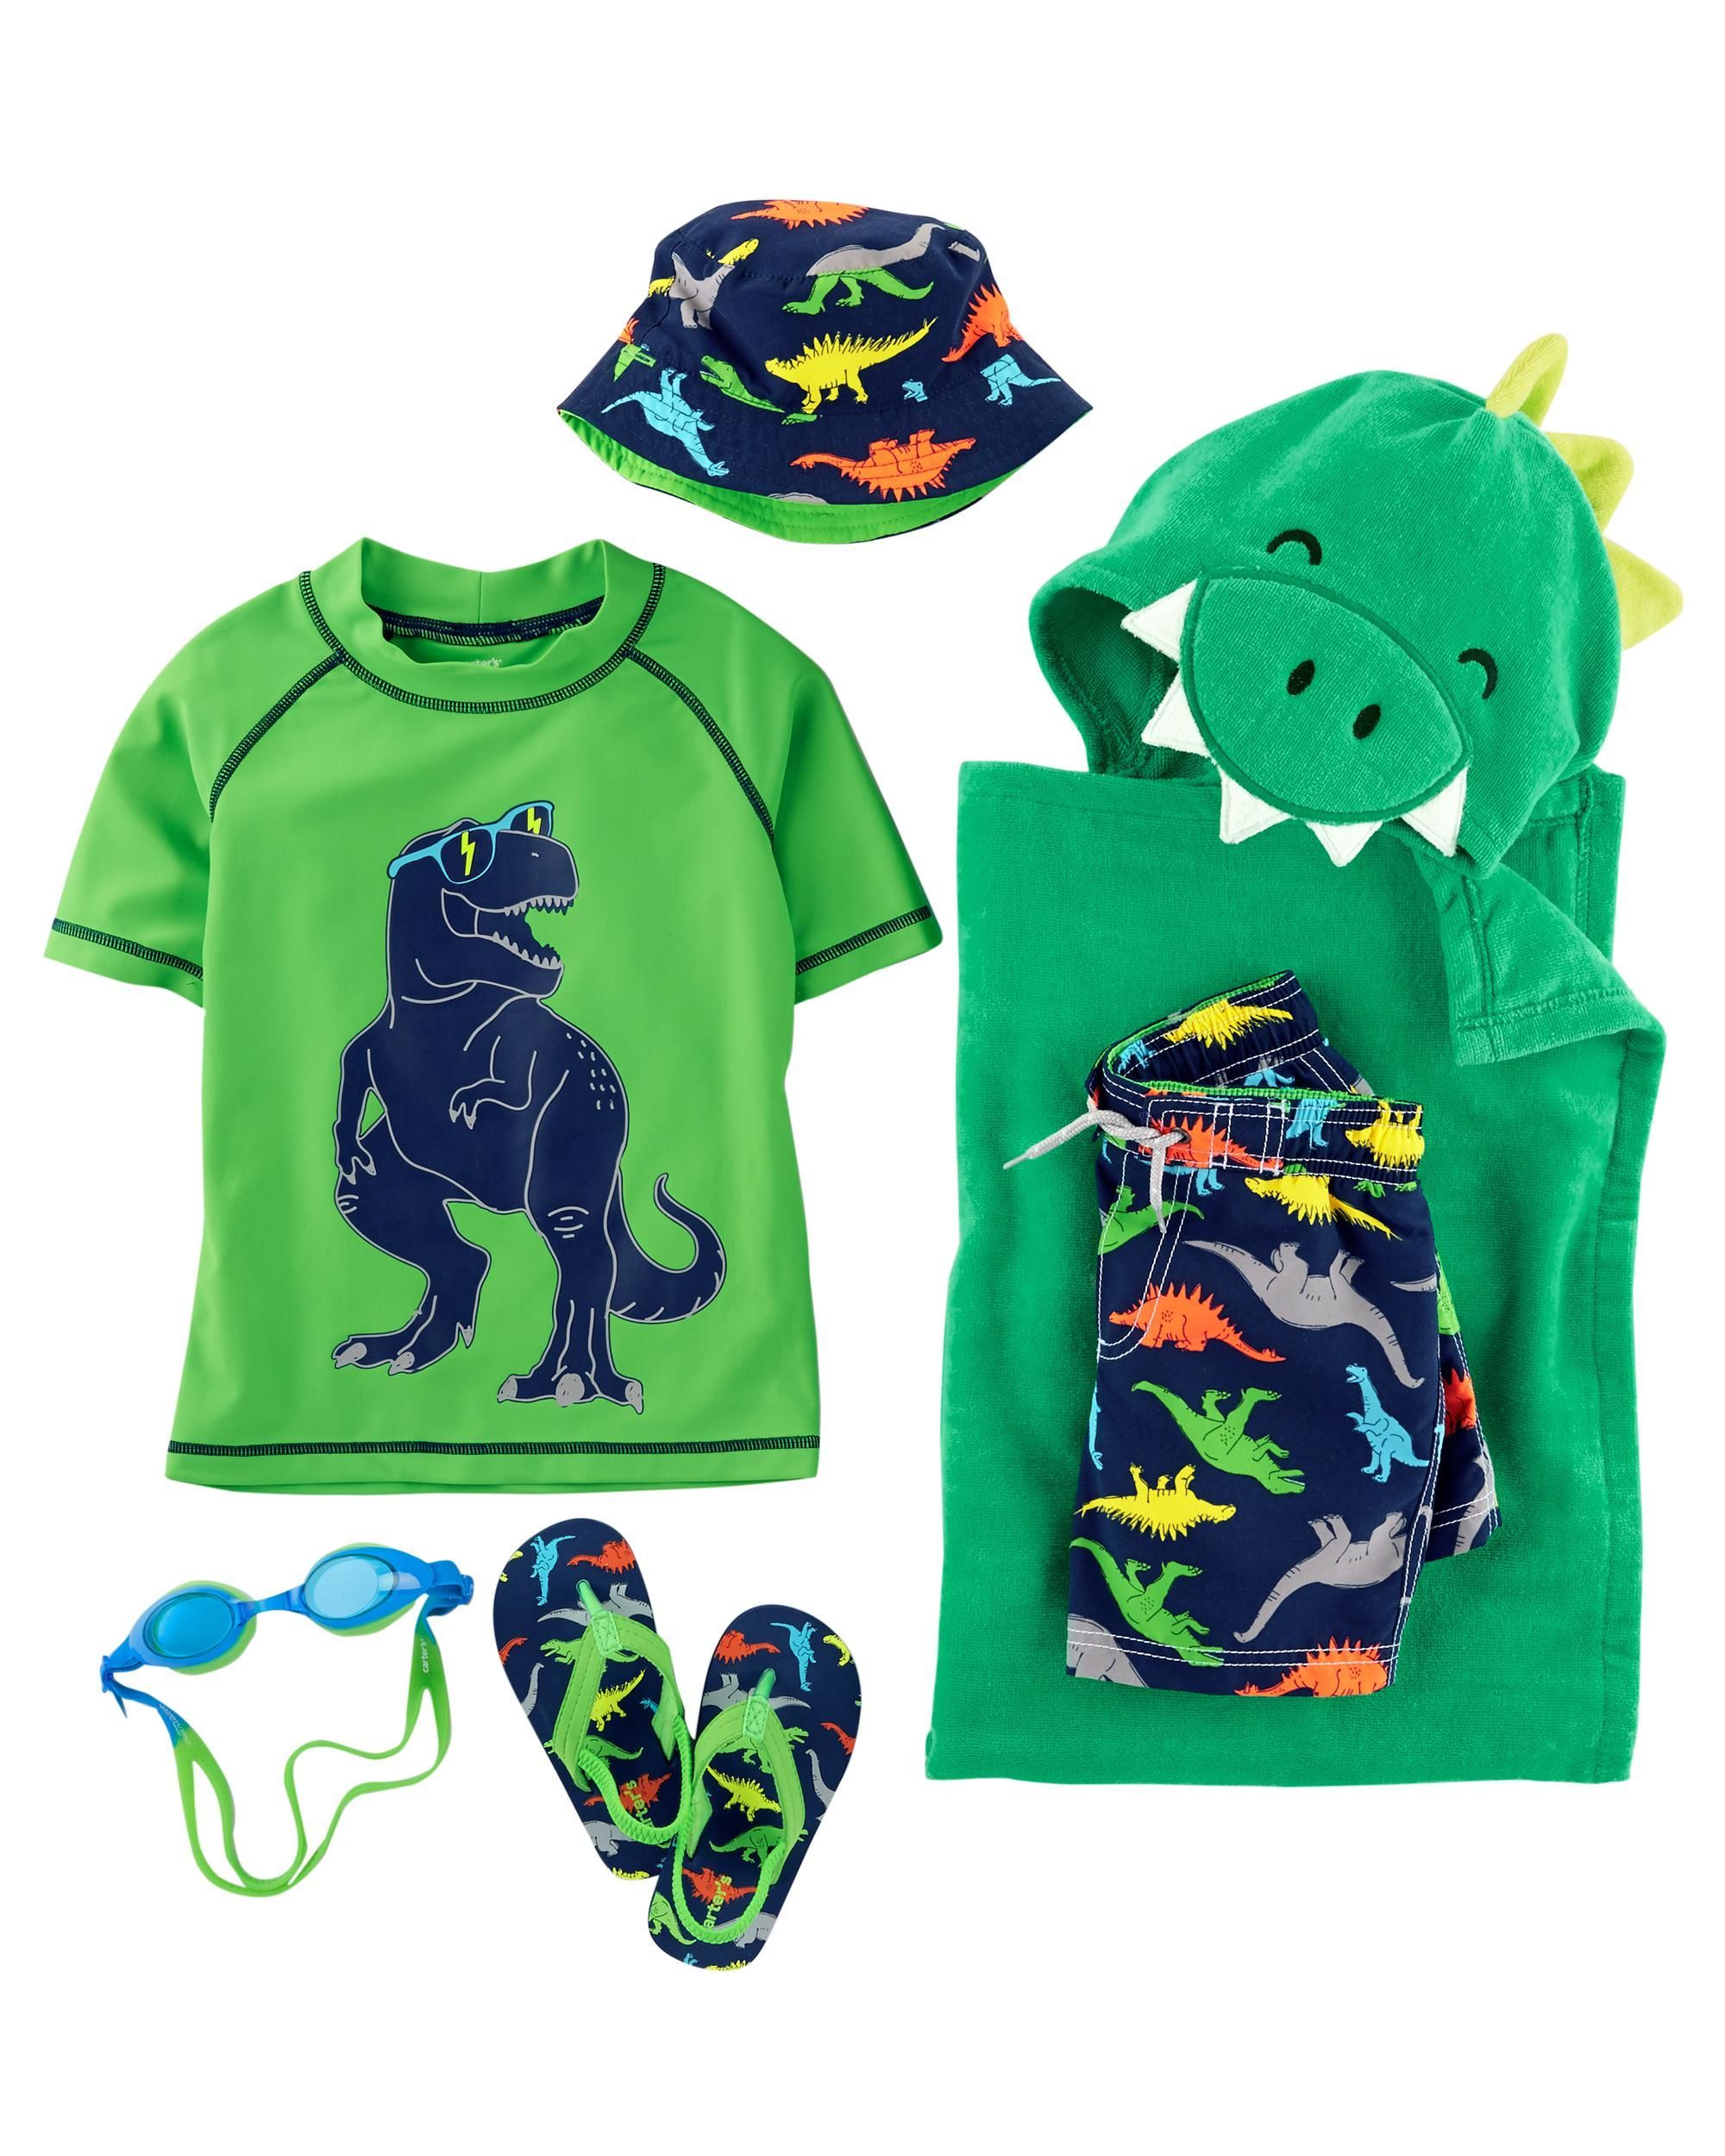 33f10fa04 He's beach-ready in this dinosaur rashguard and matching bottoms ...